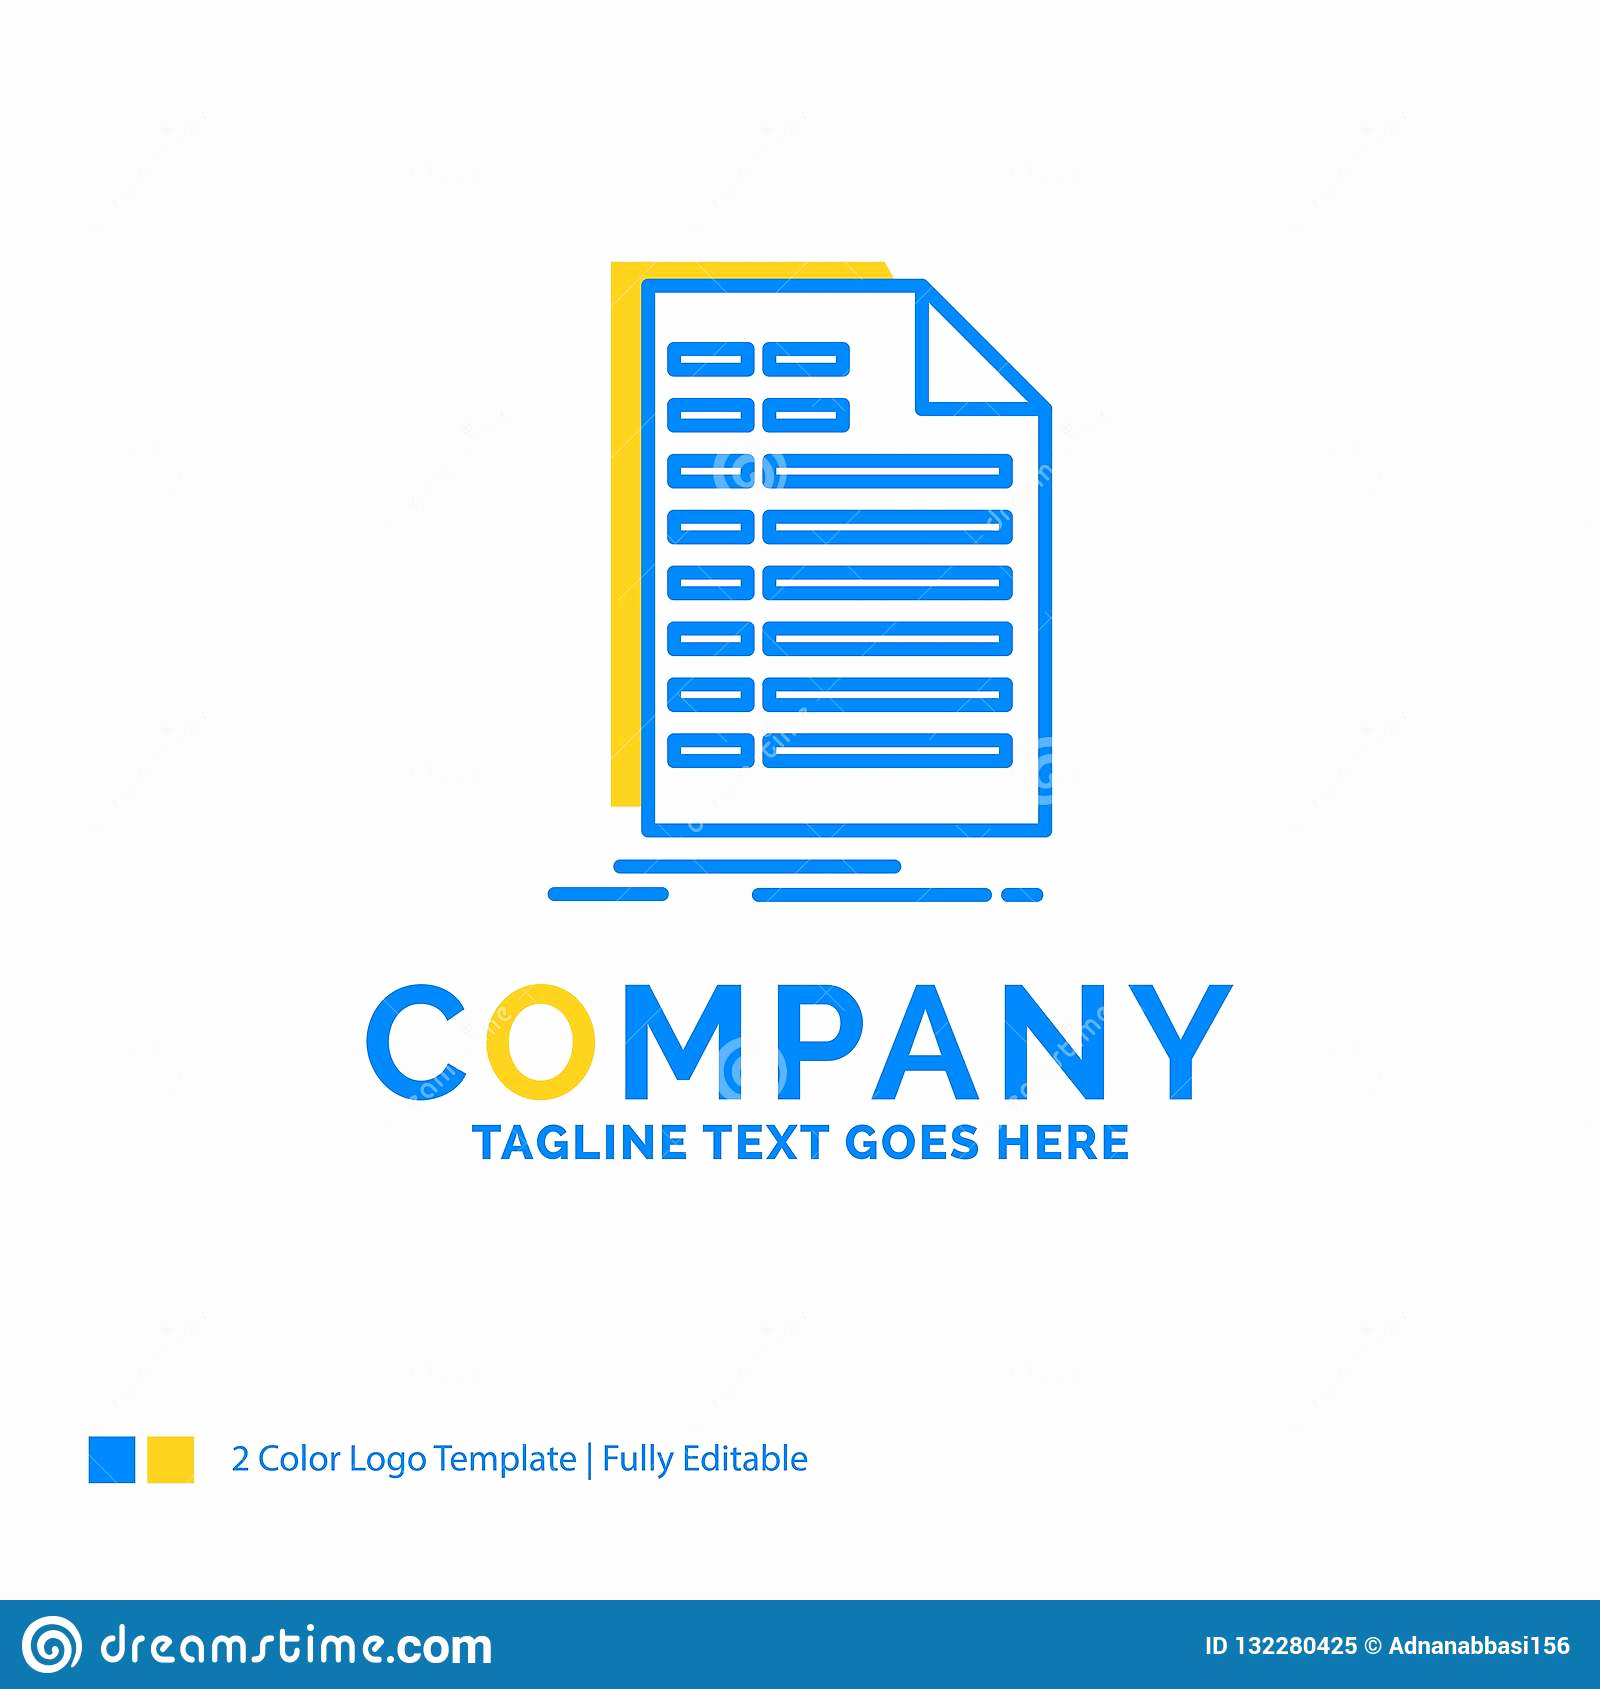 Invoice Template with Logo Inspirational Bill Excel File Invoice Statement Blue Yellow Business